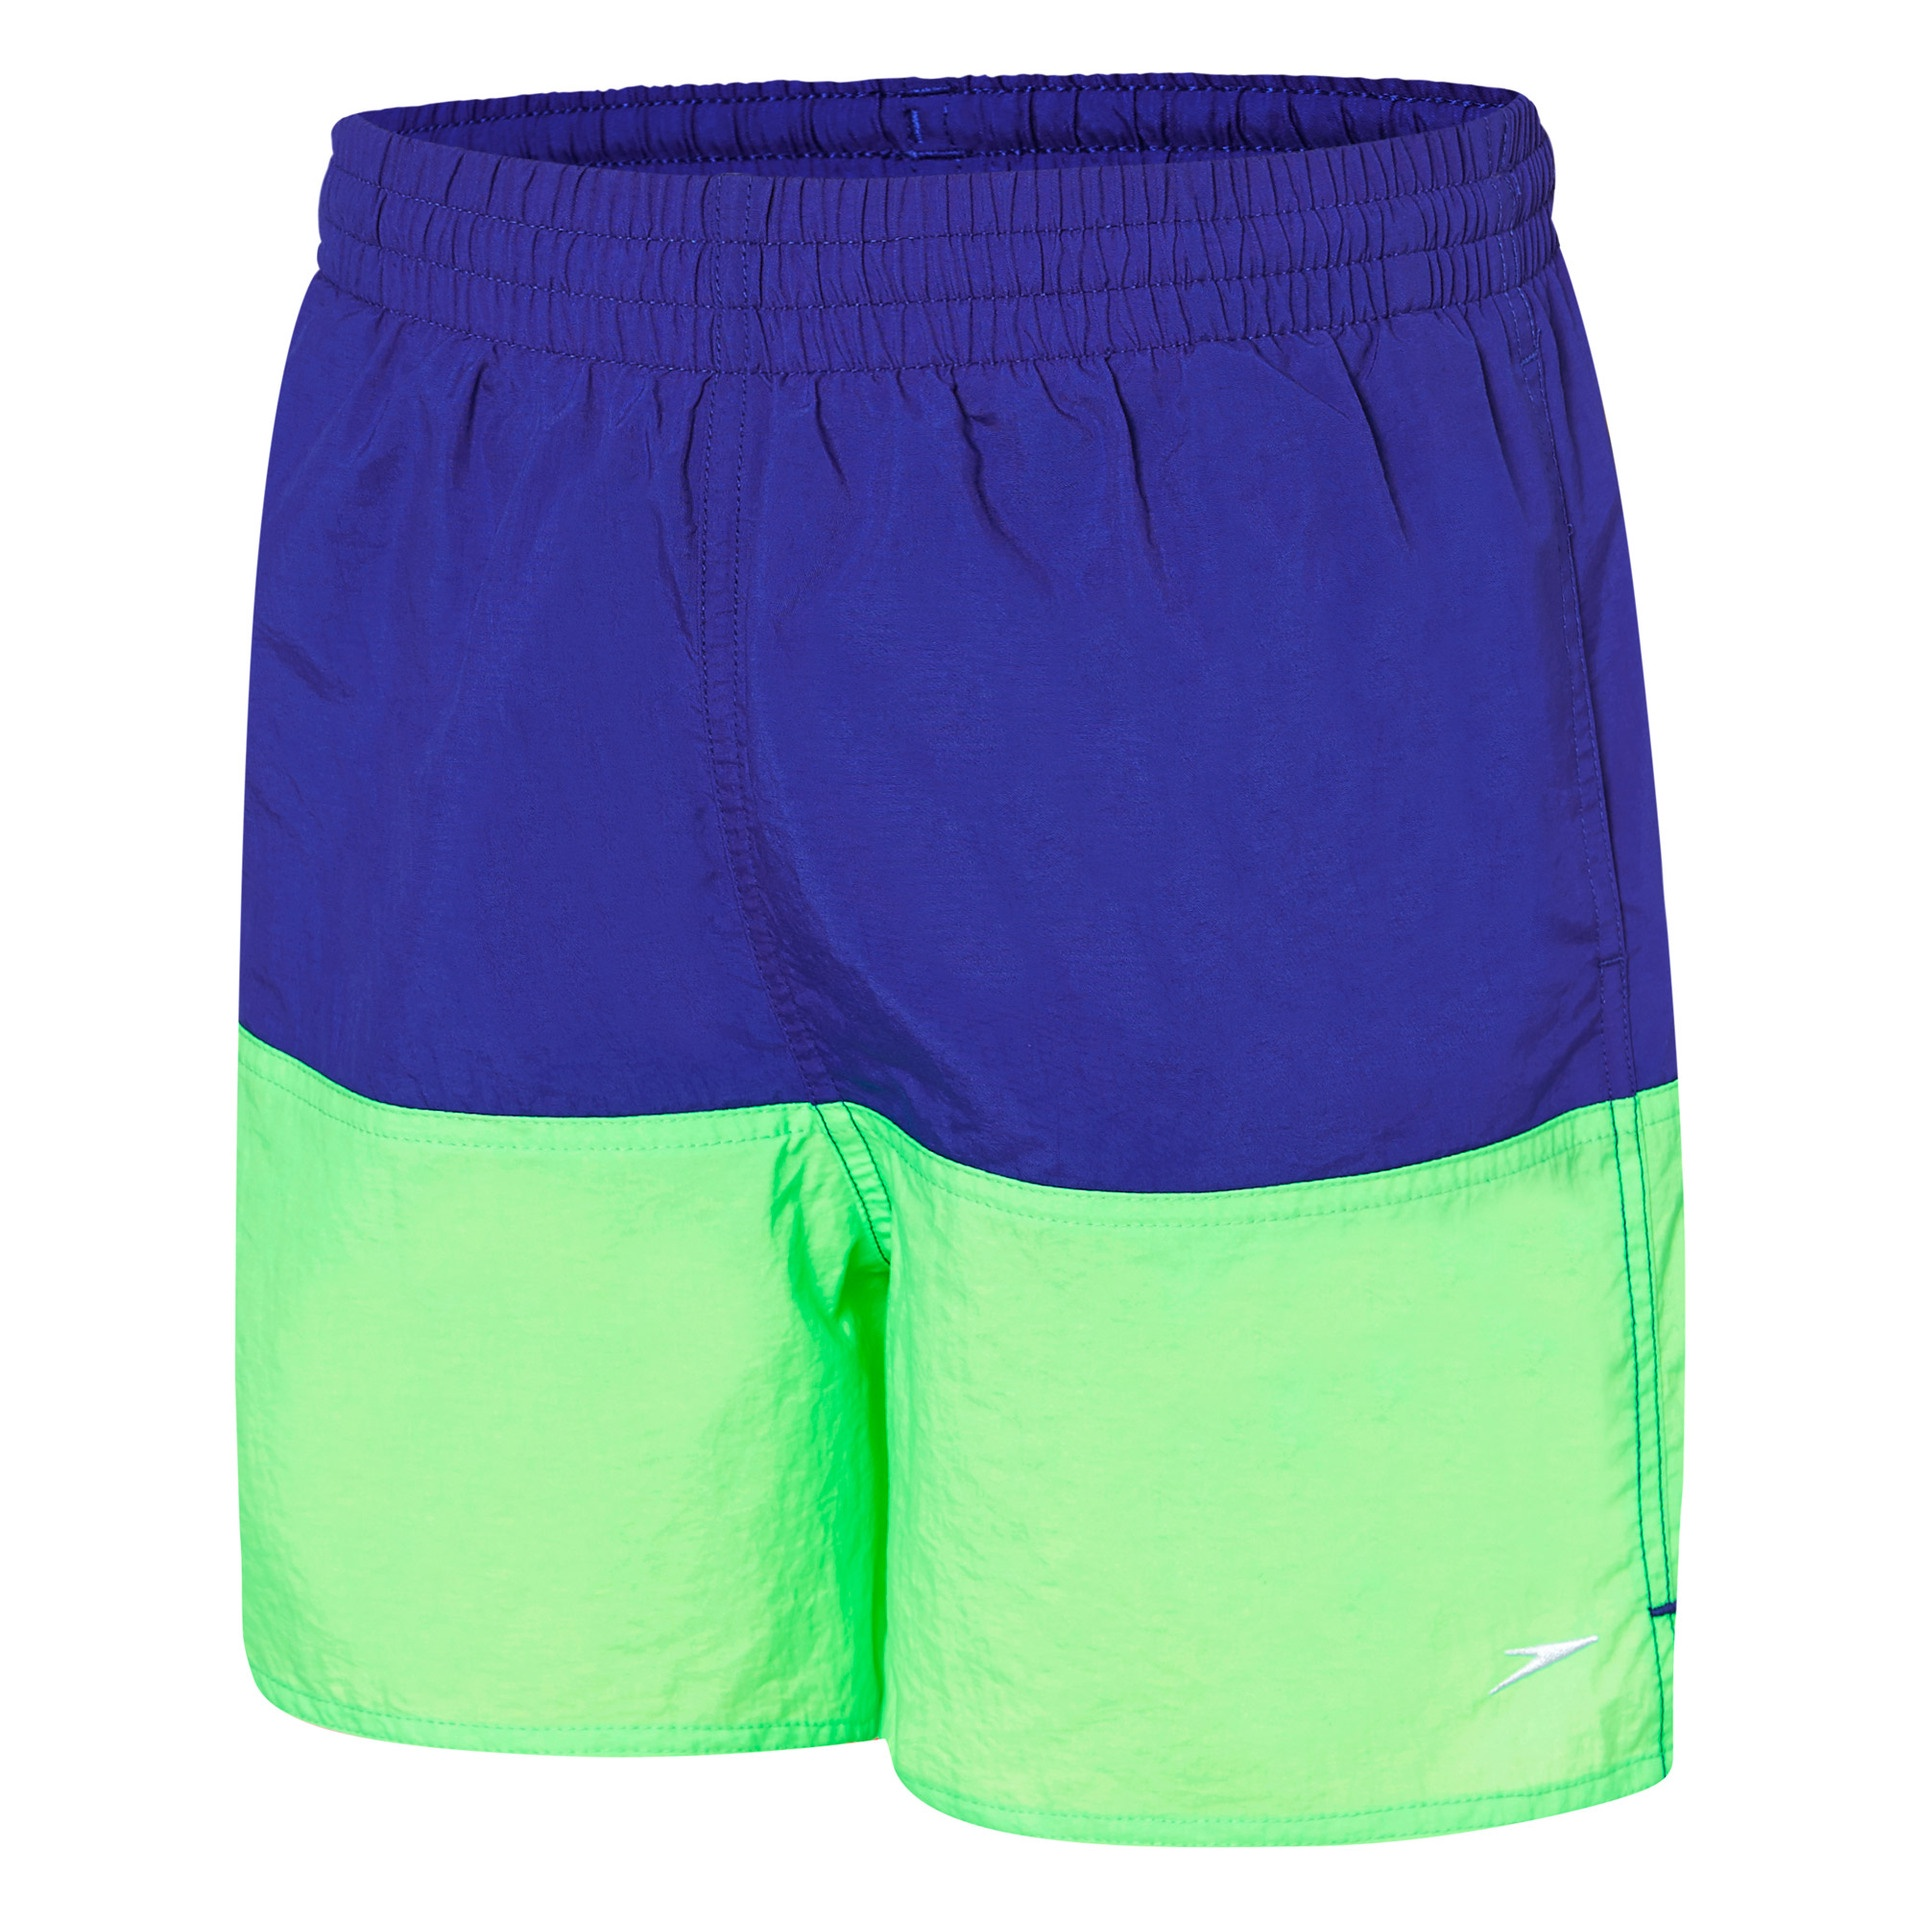 Boys Panel Solid Leisure Watershort Speed/Laser Green/Scandik